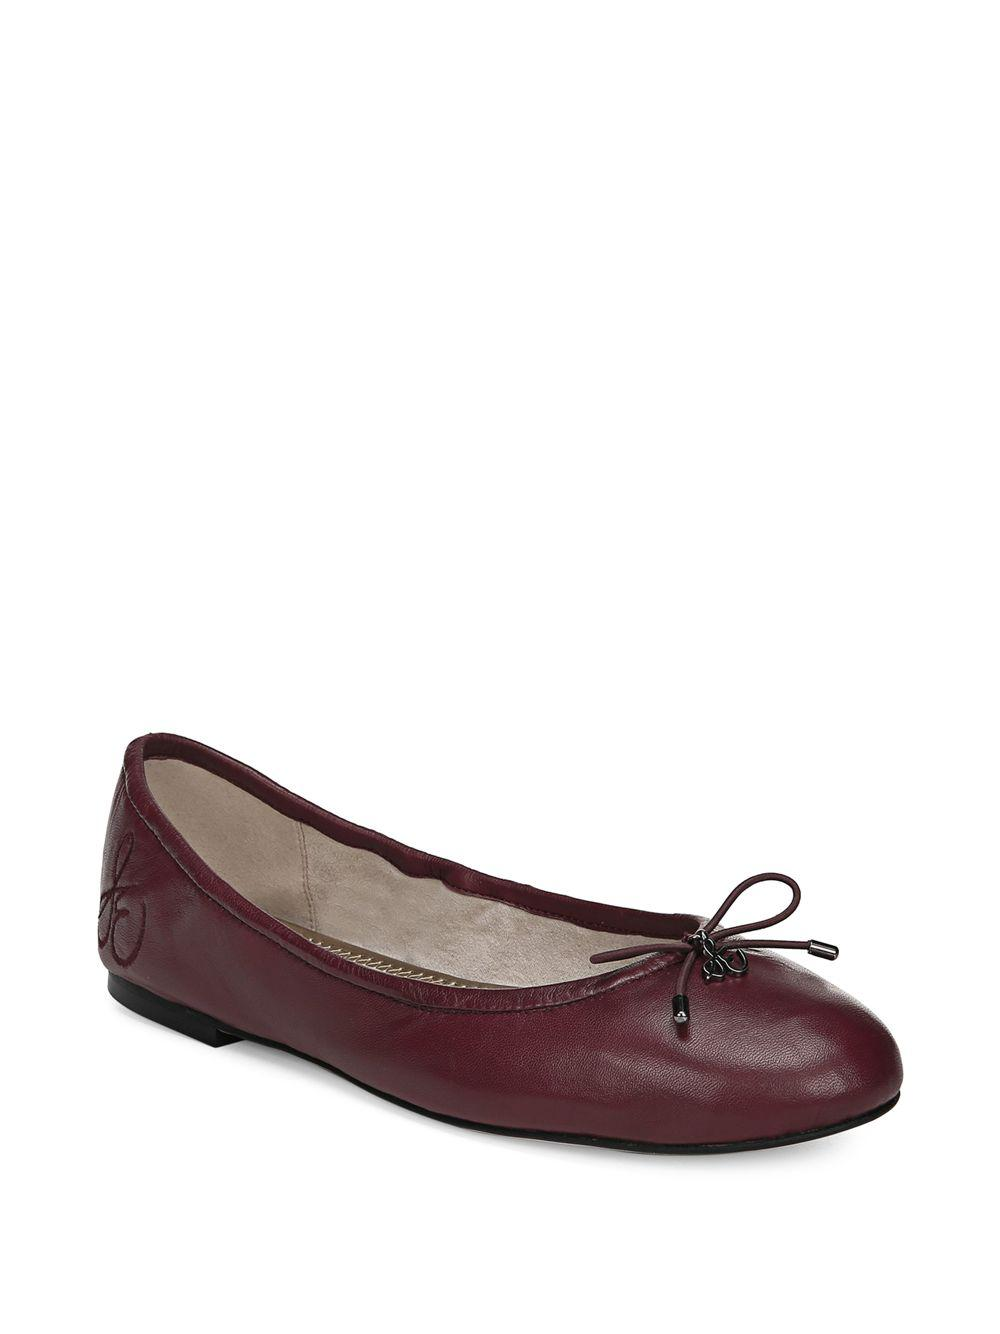 a3bc008b4d45e Sam Edelman. Women s Red Felicia Leather Ballet Flats.  100  55 From Saks  OFF 5TH